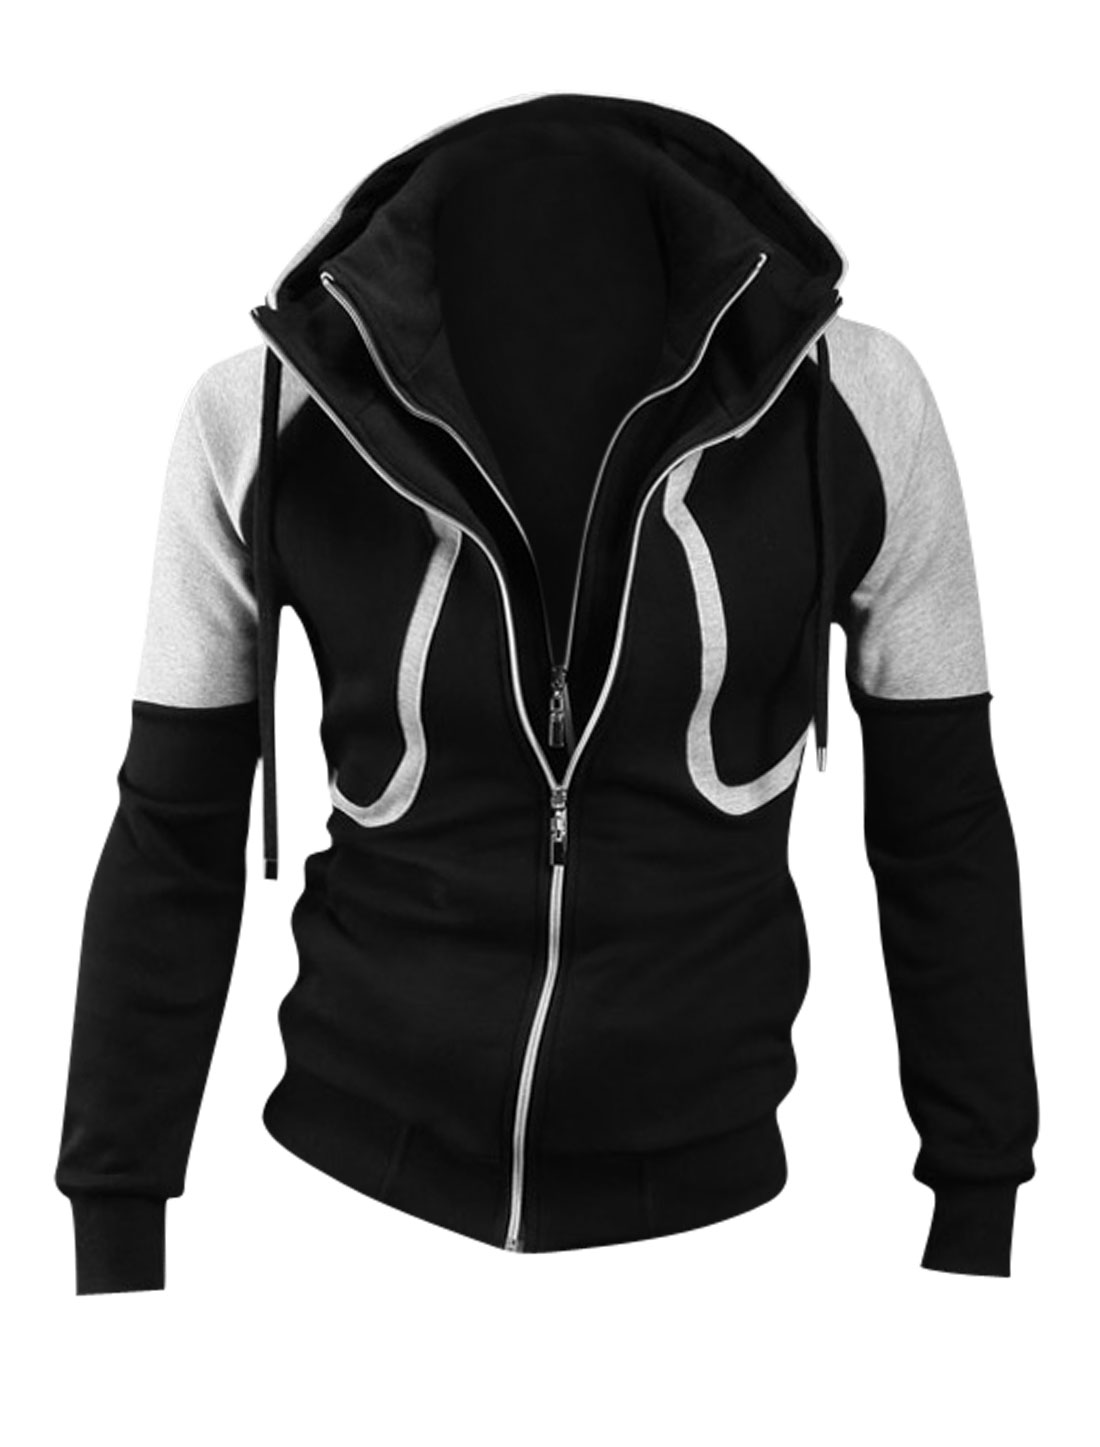 Men Double Pockets Front Long Sleeve Casual Hooded Jacket Black Light Gray M